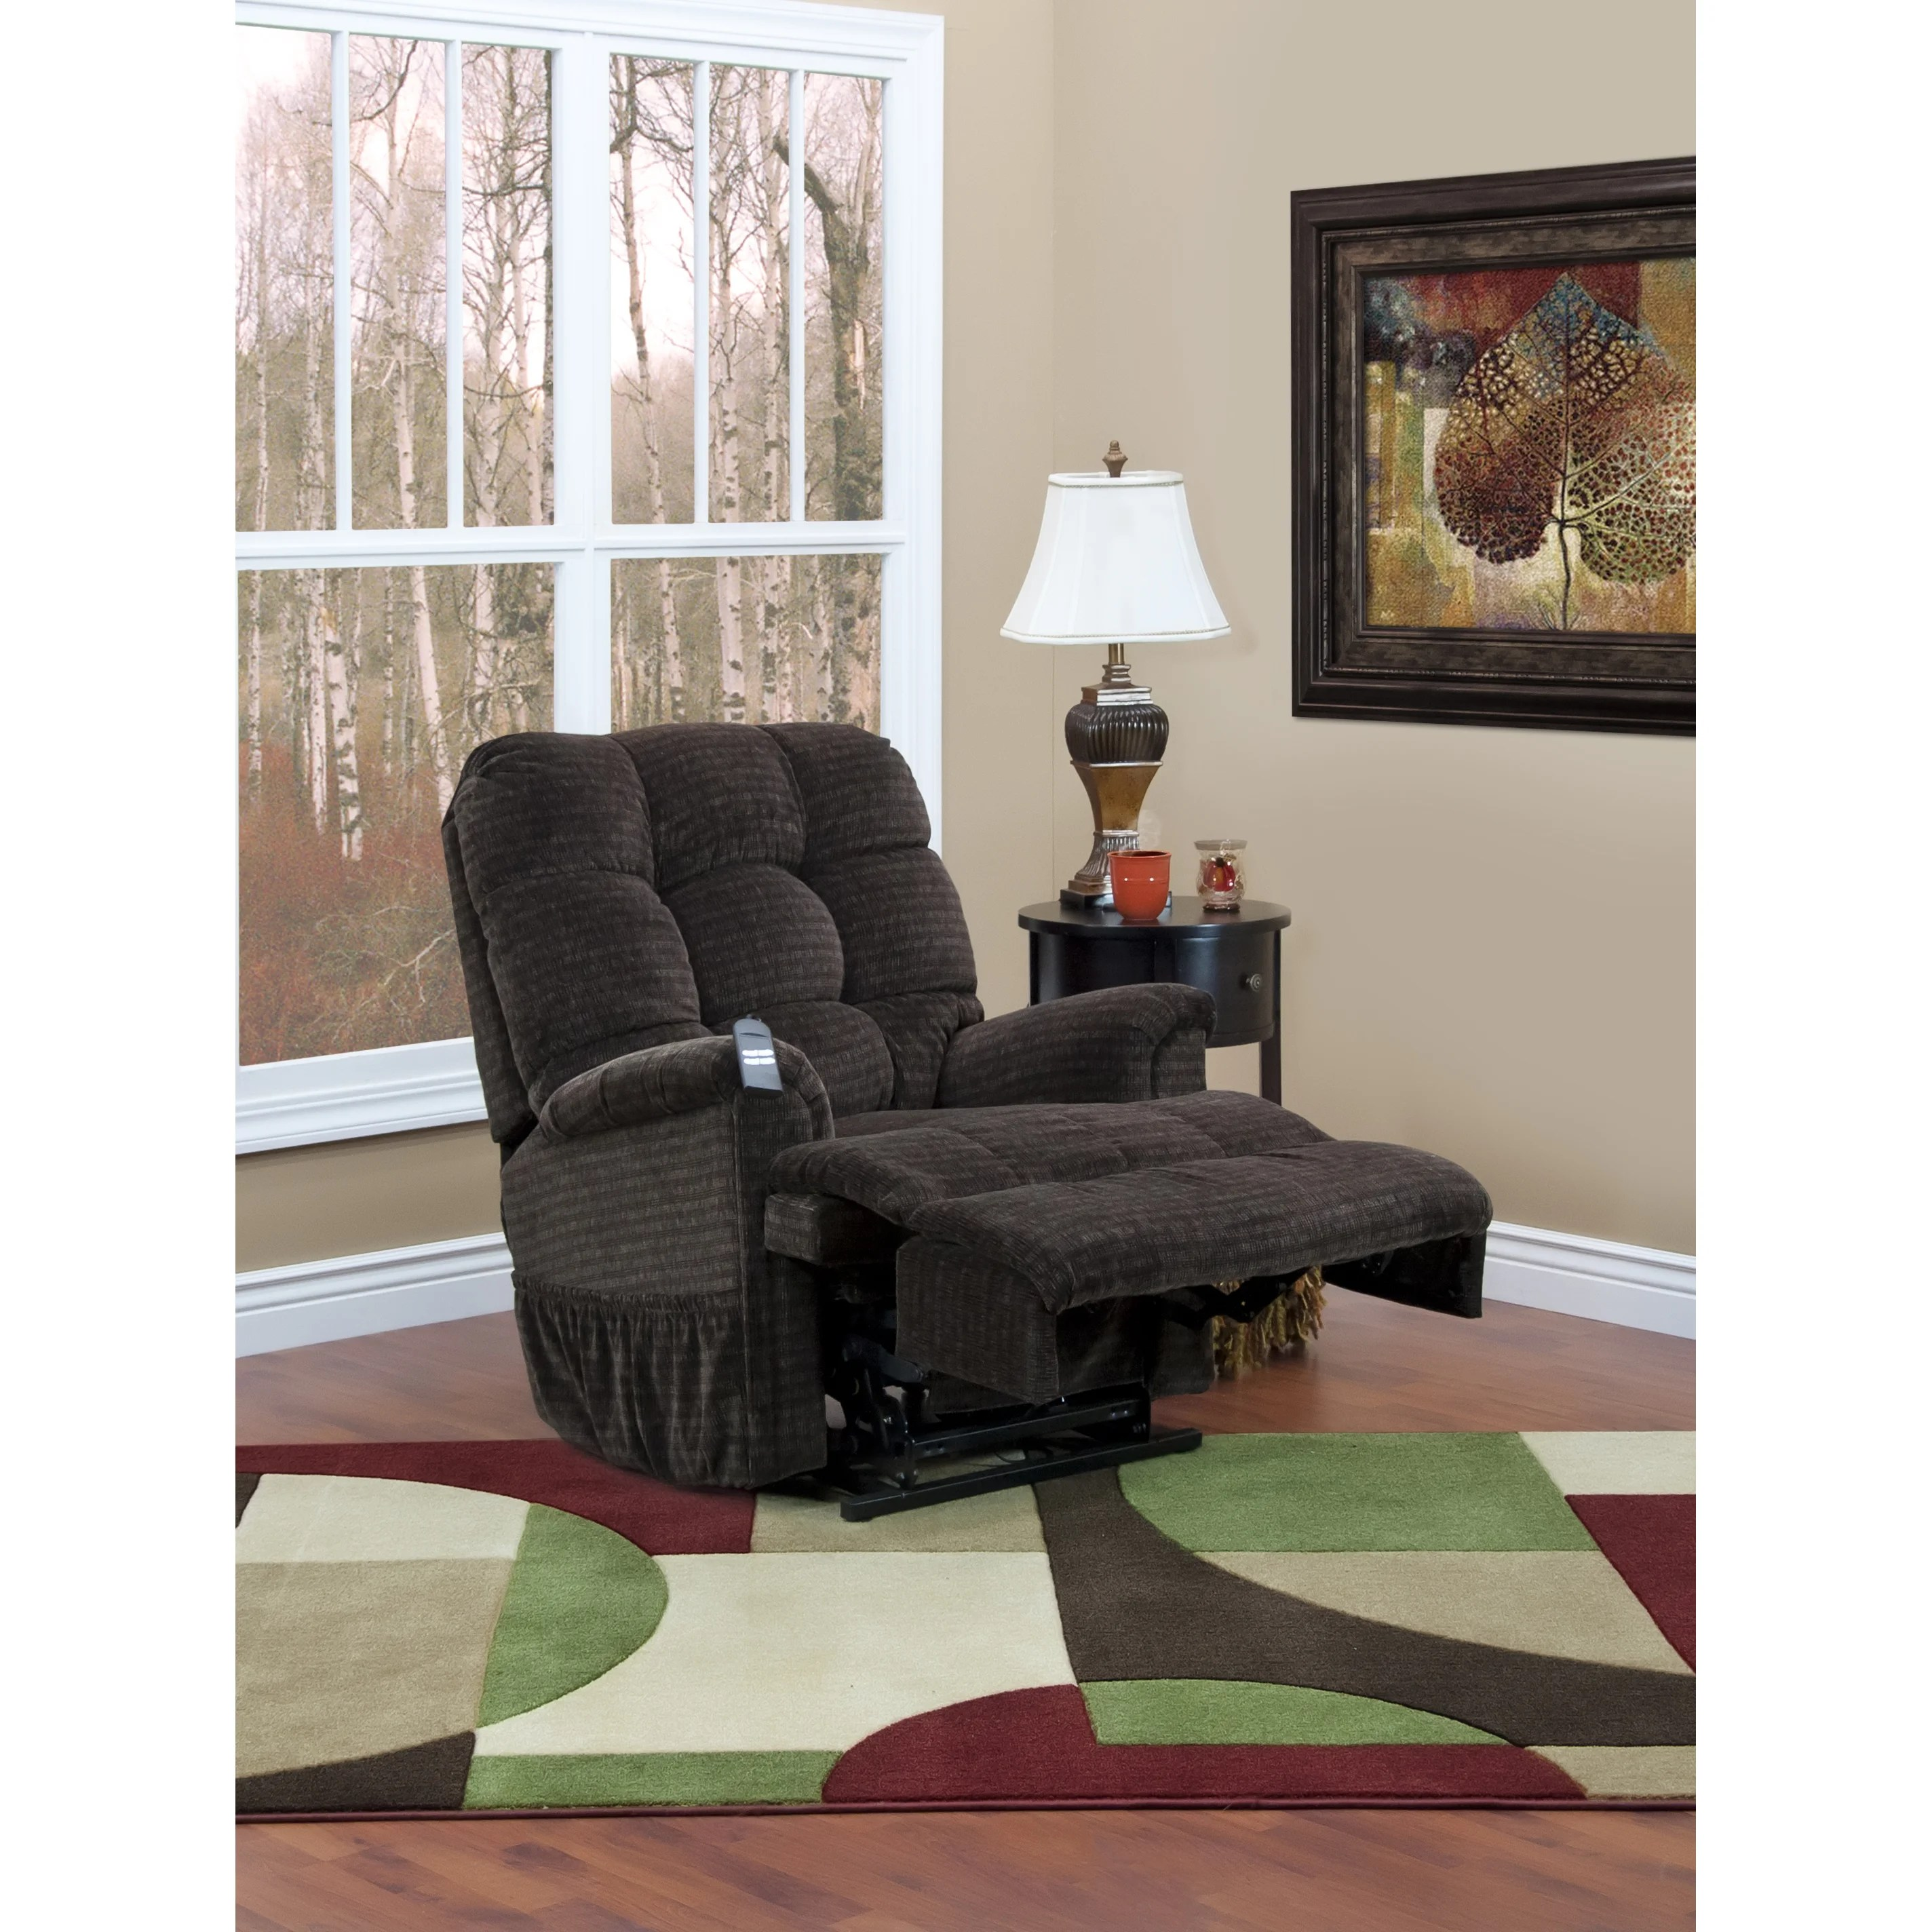 Med Lift Chairs Med Lift 5555 Series Sleeper Reclining Lift Chair With